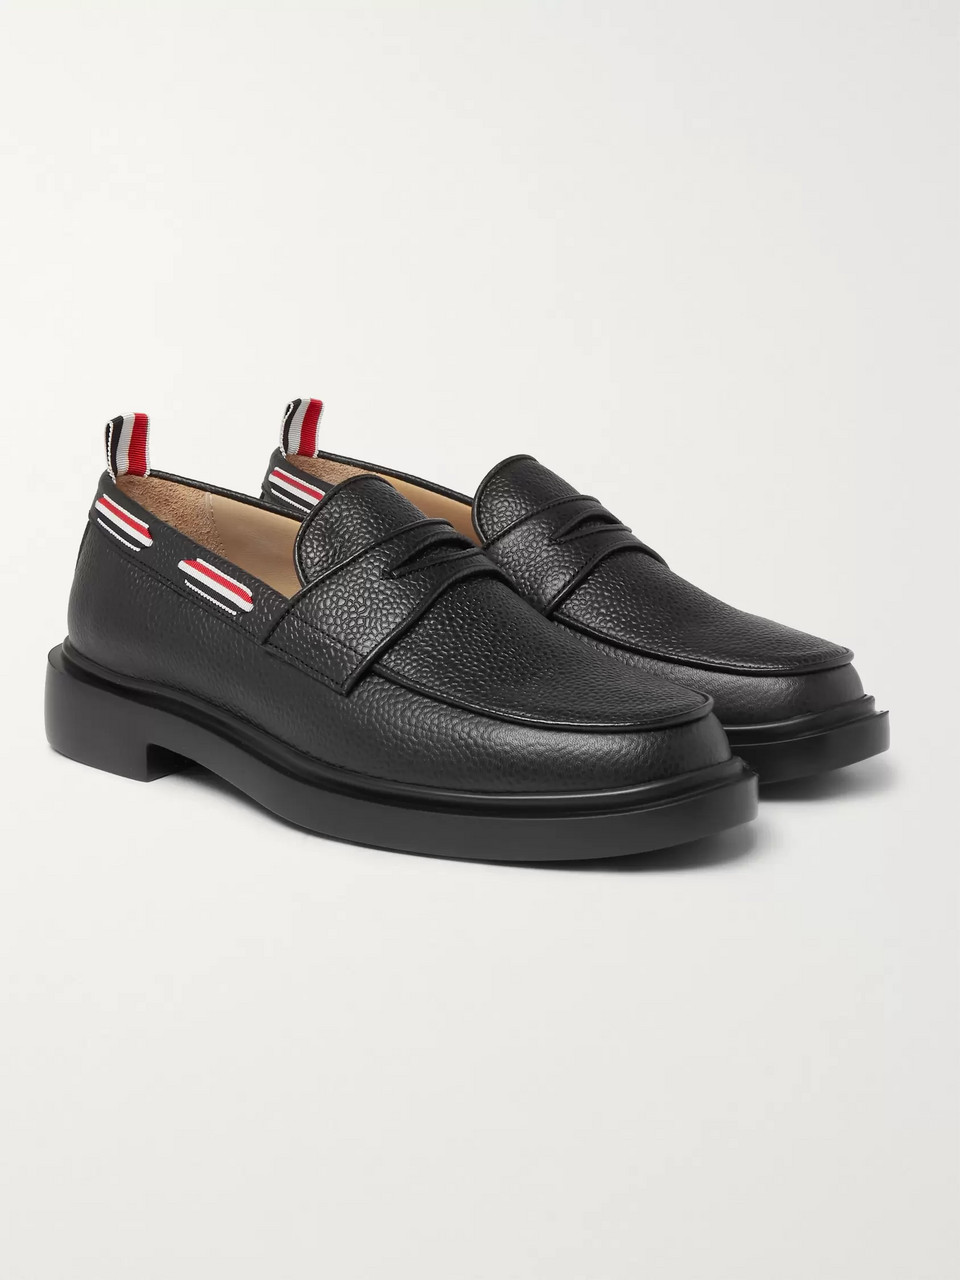 Thom Browne Grosgrain-Trimmed Pebble-Grain Leather Penny Loafers